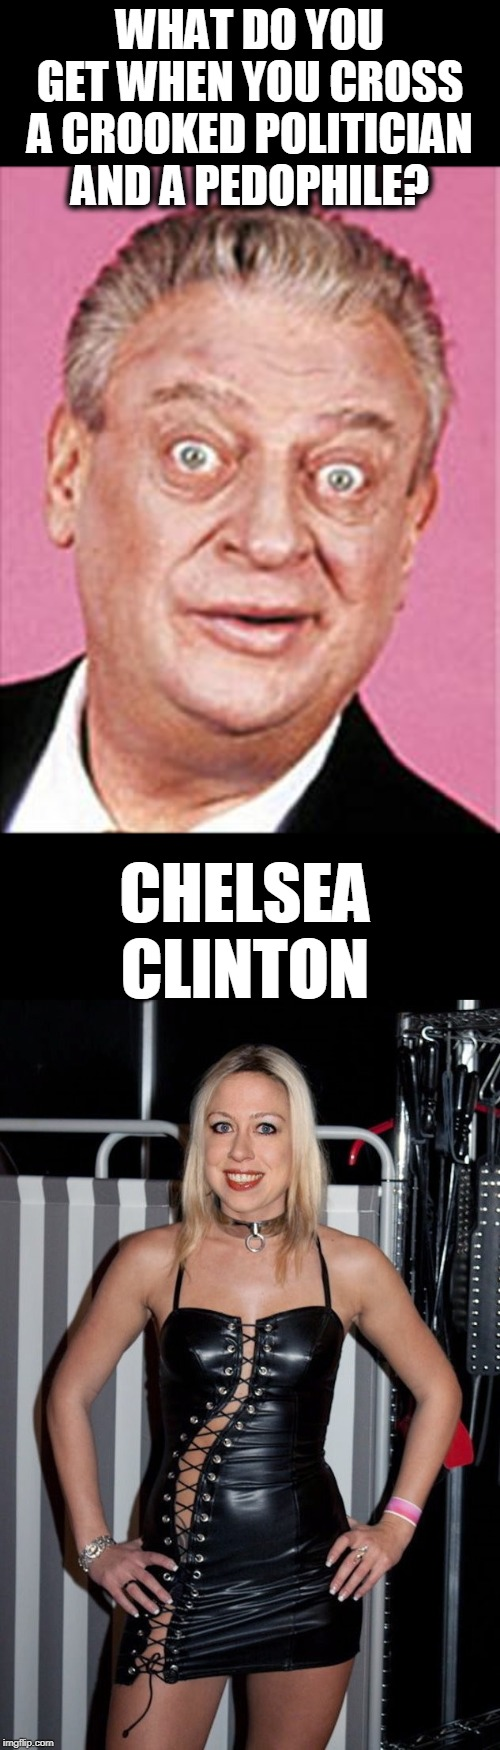 Rodney |  WHAT DO YOU GET WHEN YOU CROSS A CROOKED POLITICIAN  AND A PEDOPHILE? CHELSEA CLINTON | image tagged in rodney dangerfield,politics | made w/ Imgflip meme maker